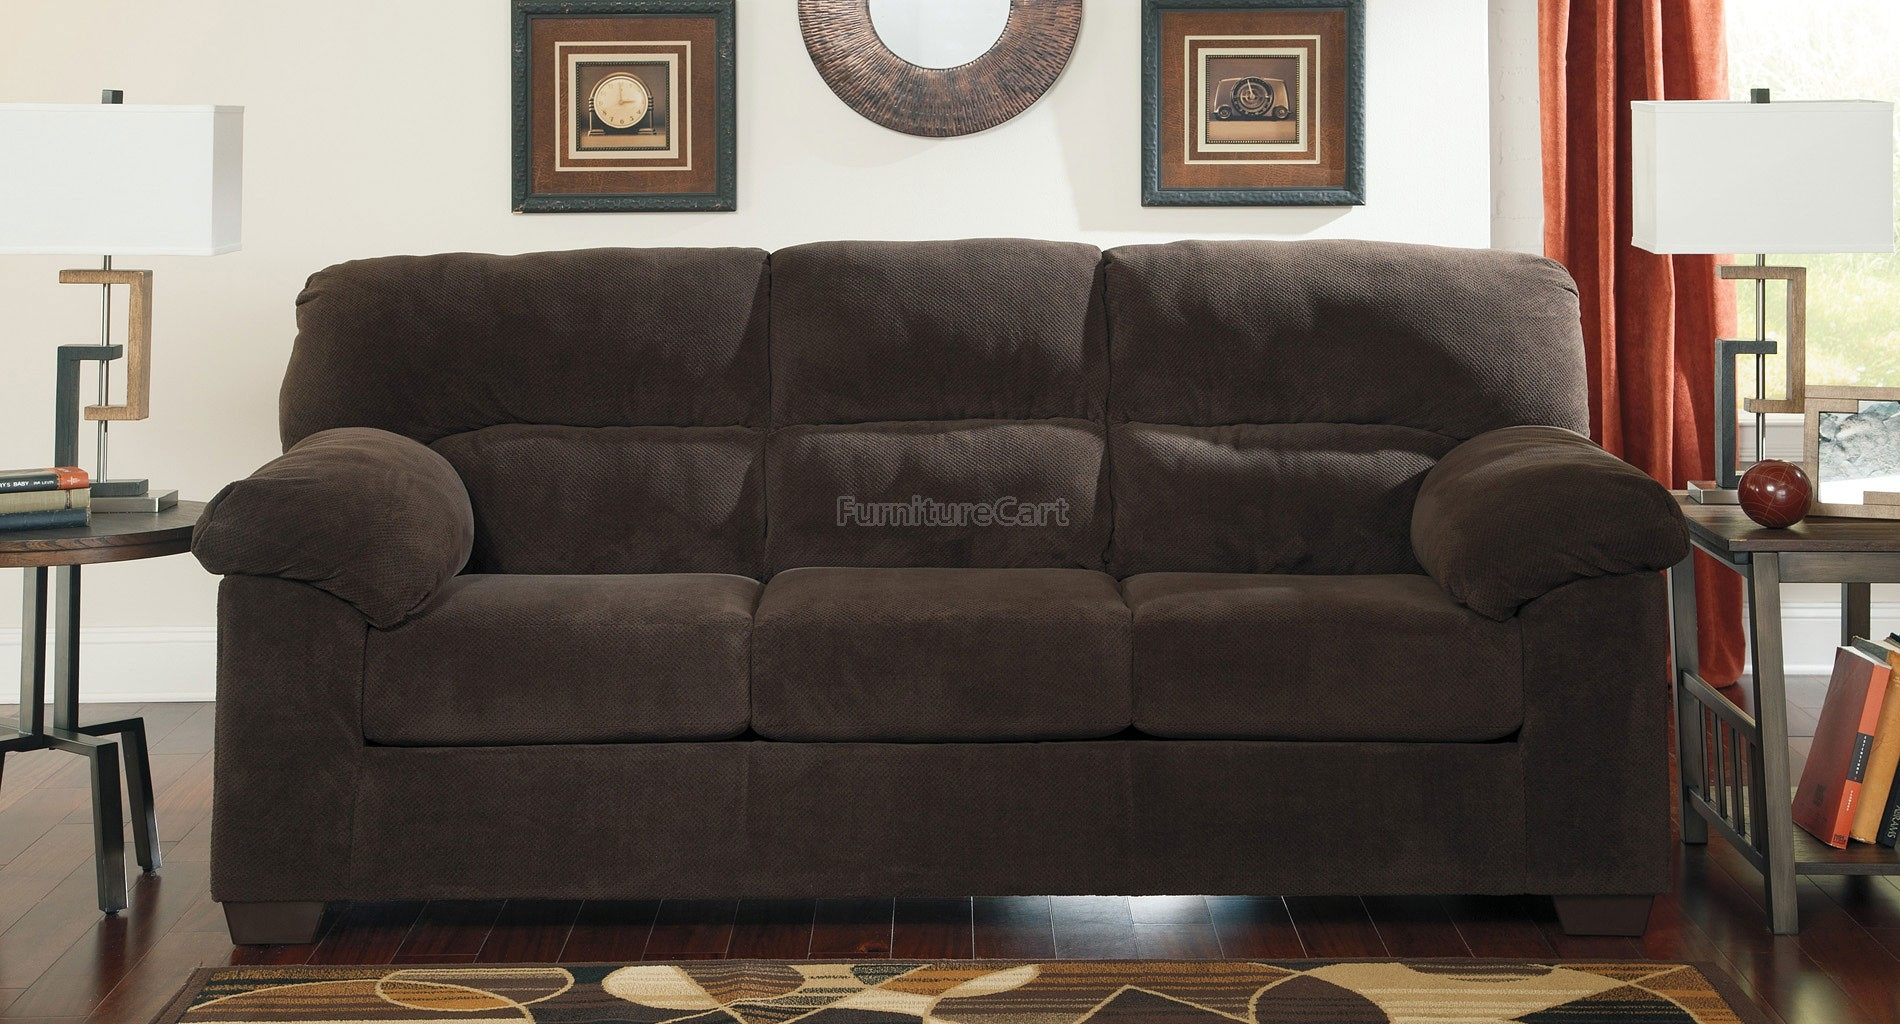 Decor Fascinating Benchcraft Sofa With Luxury Shapes For Living For Berkline Sofa Recliner (View 5 of 12)